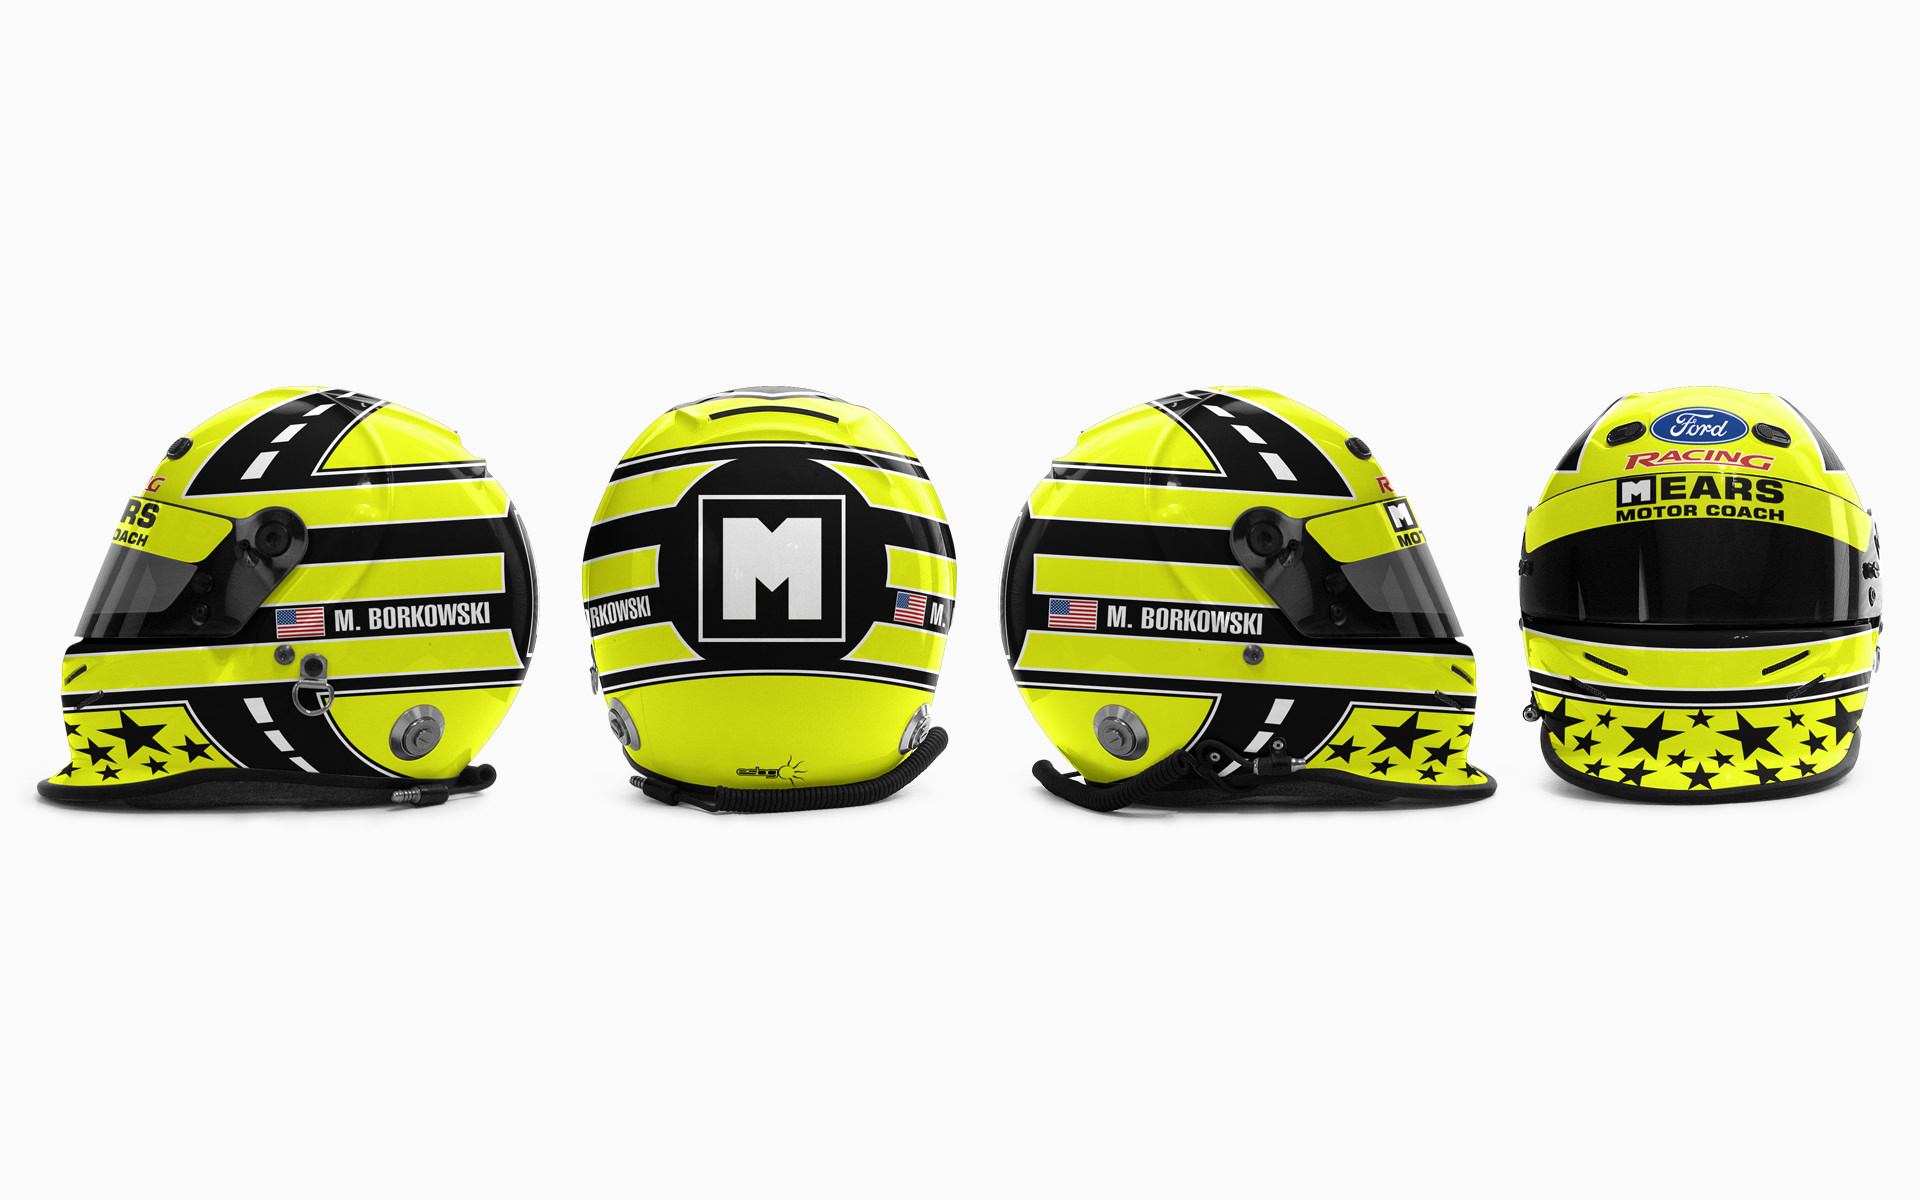 Mike Borkowski Mears Motor Coach Helmet Livery Visualization